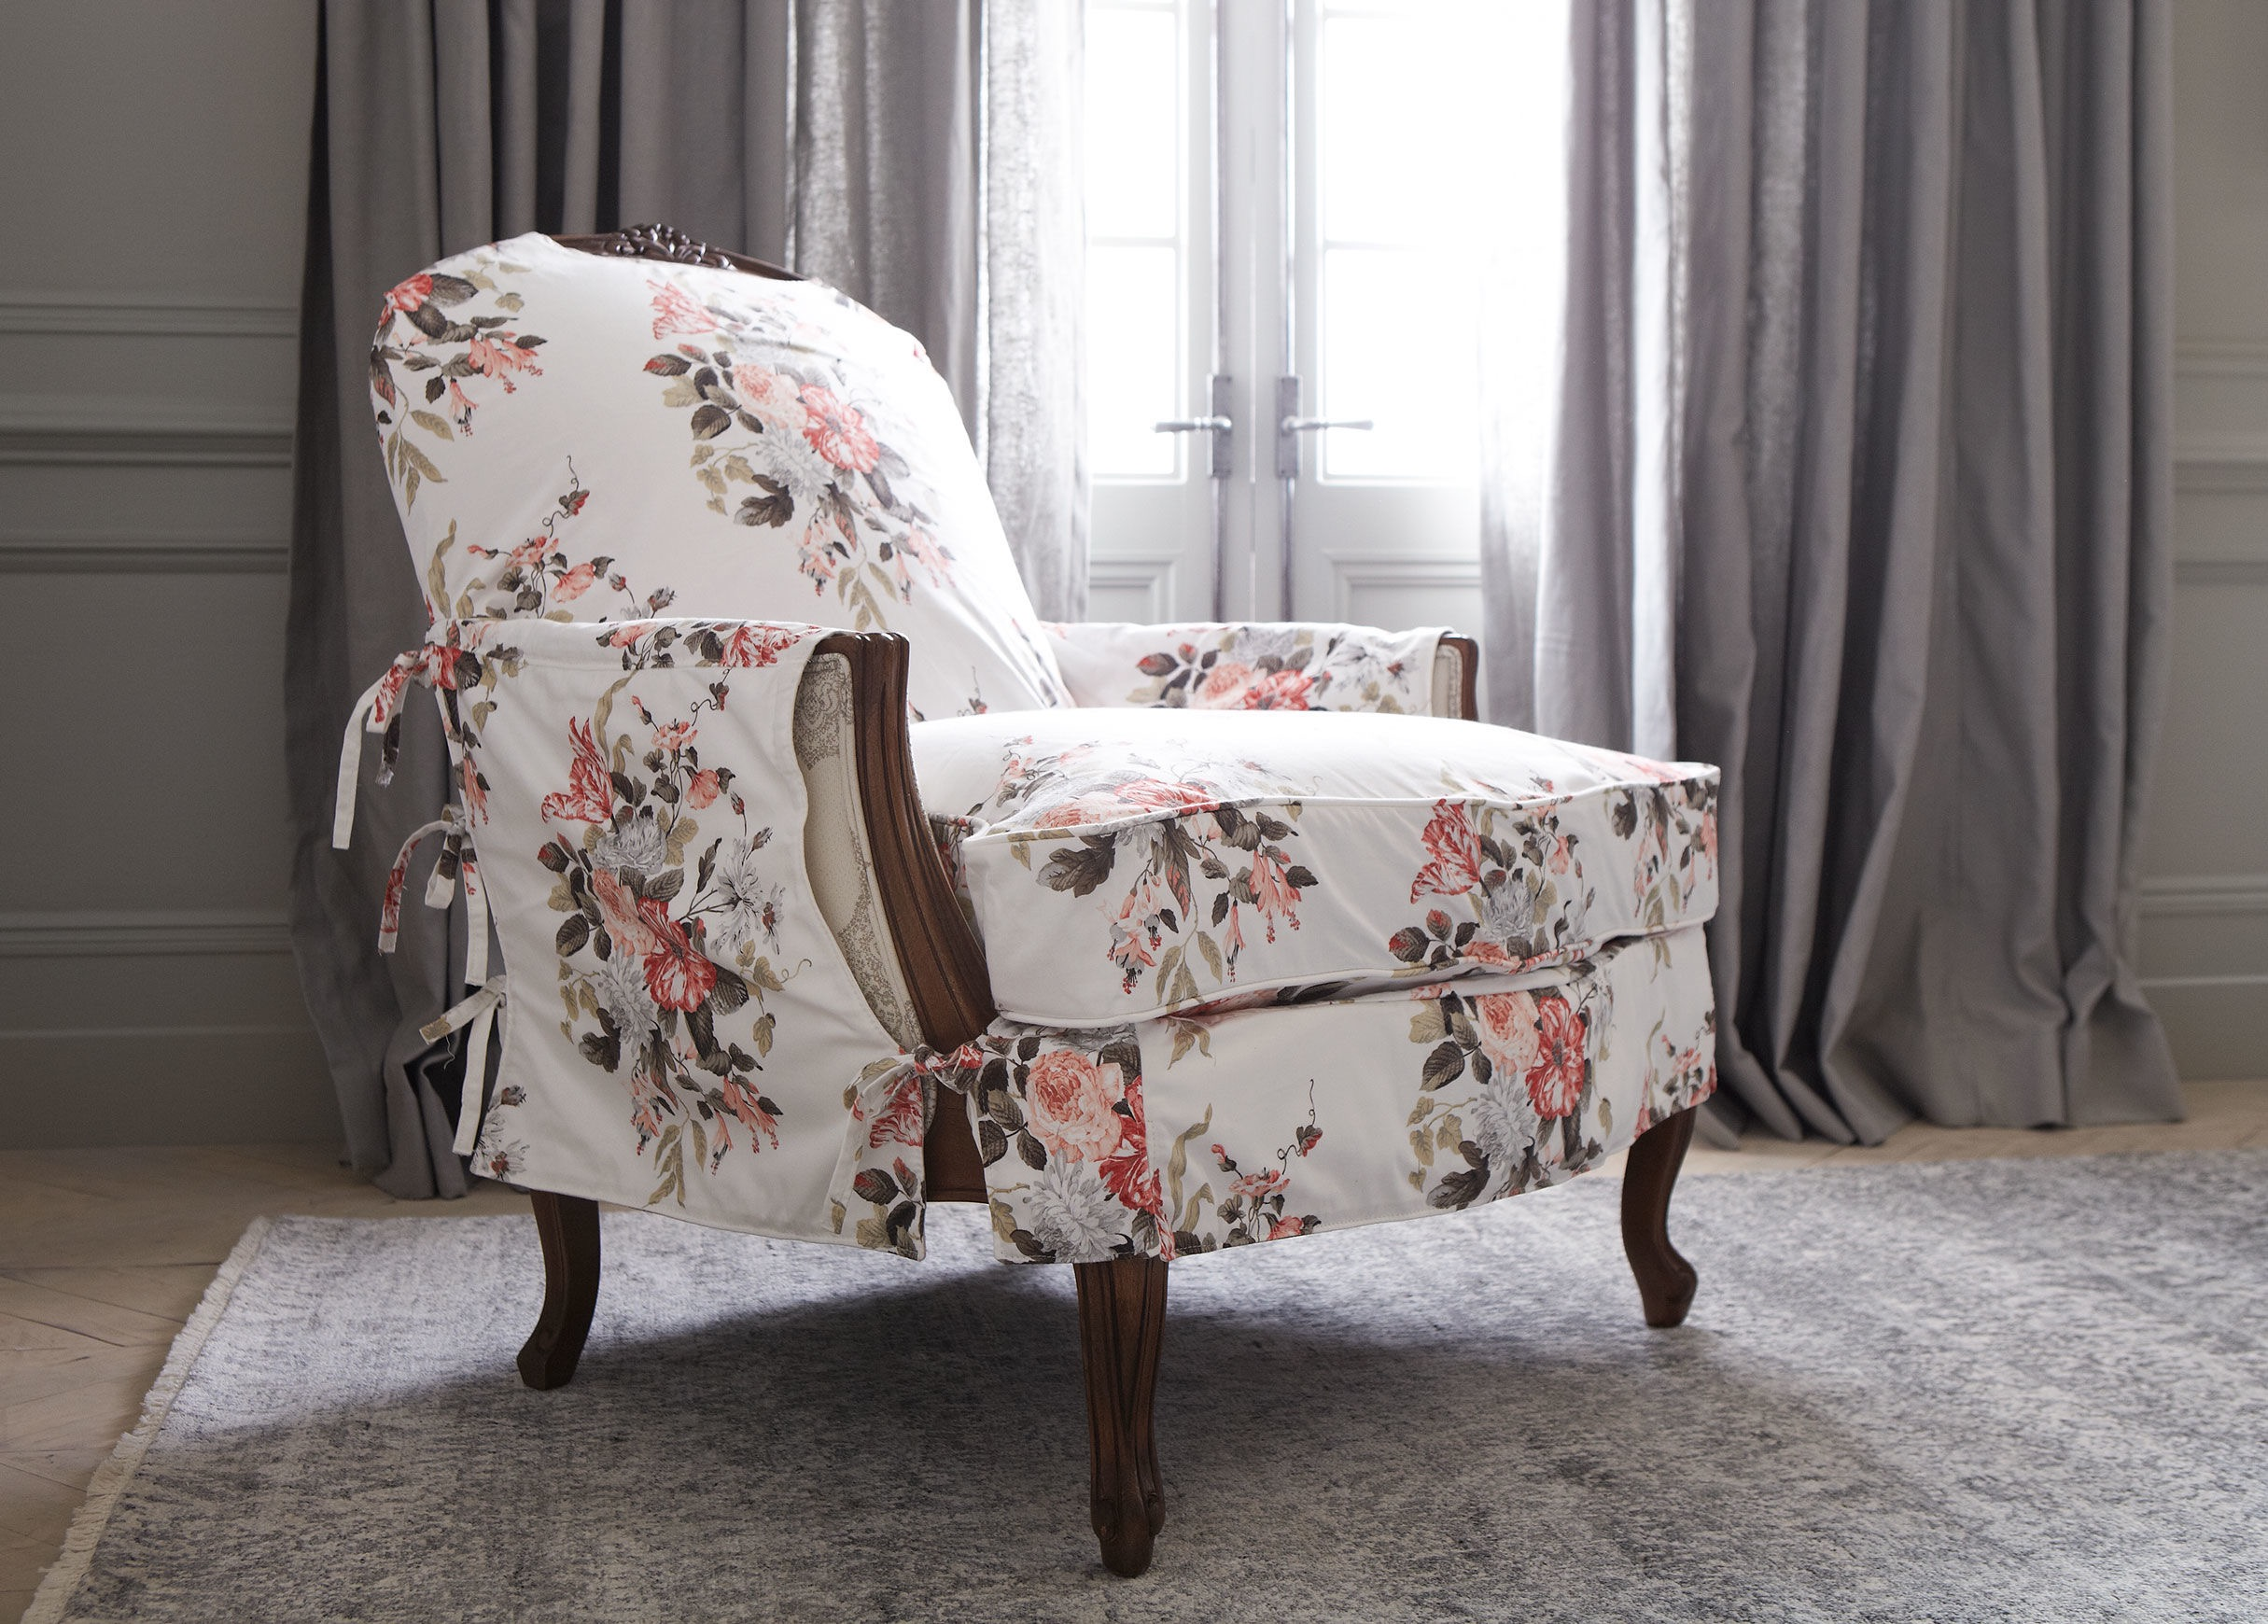 Furniture & Rug Ethan Allen Slipcovers